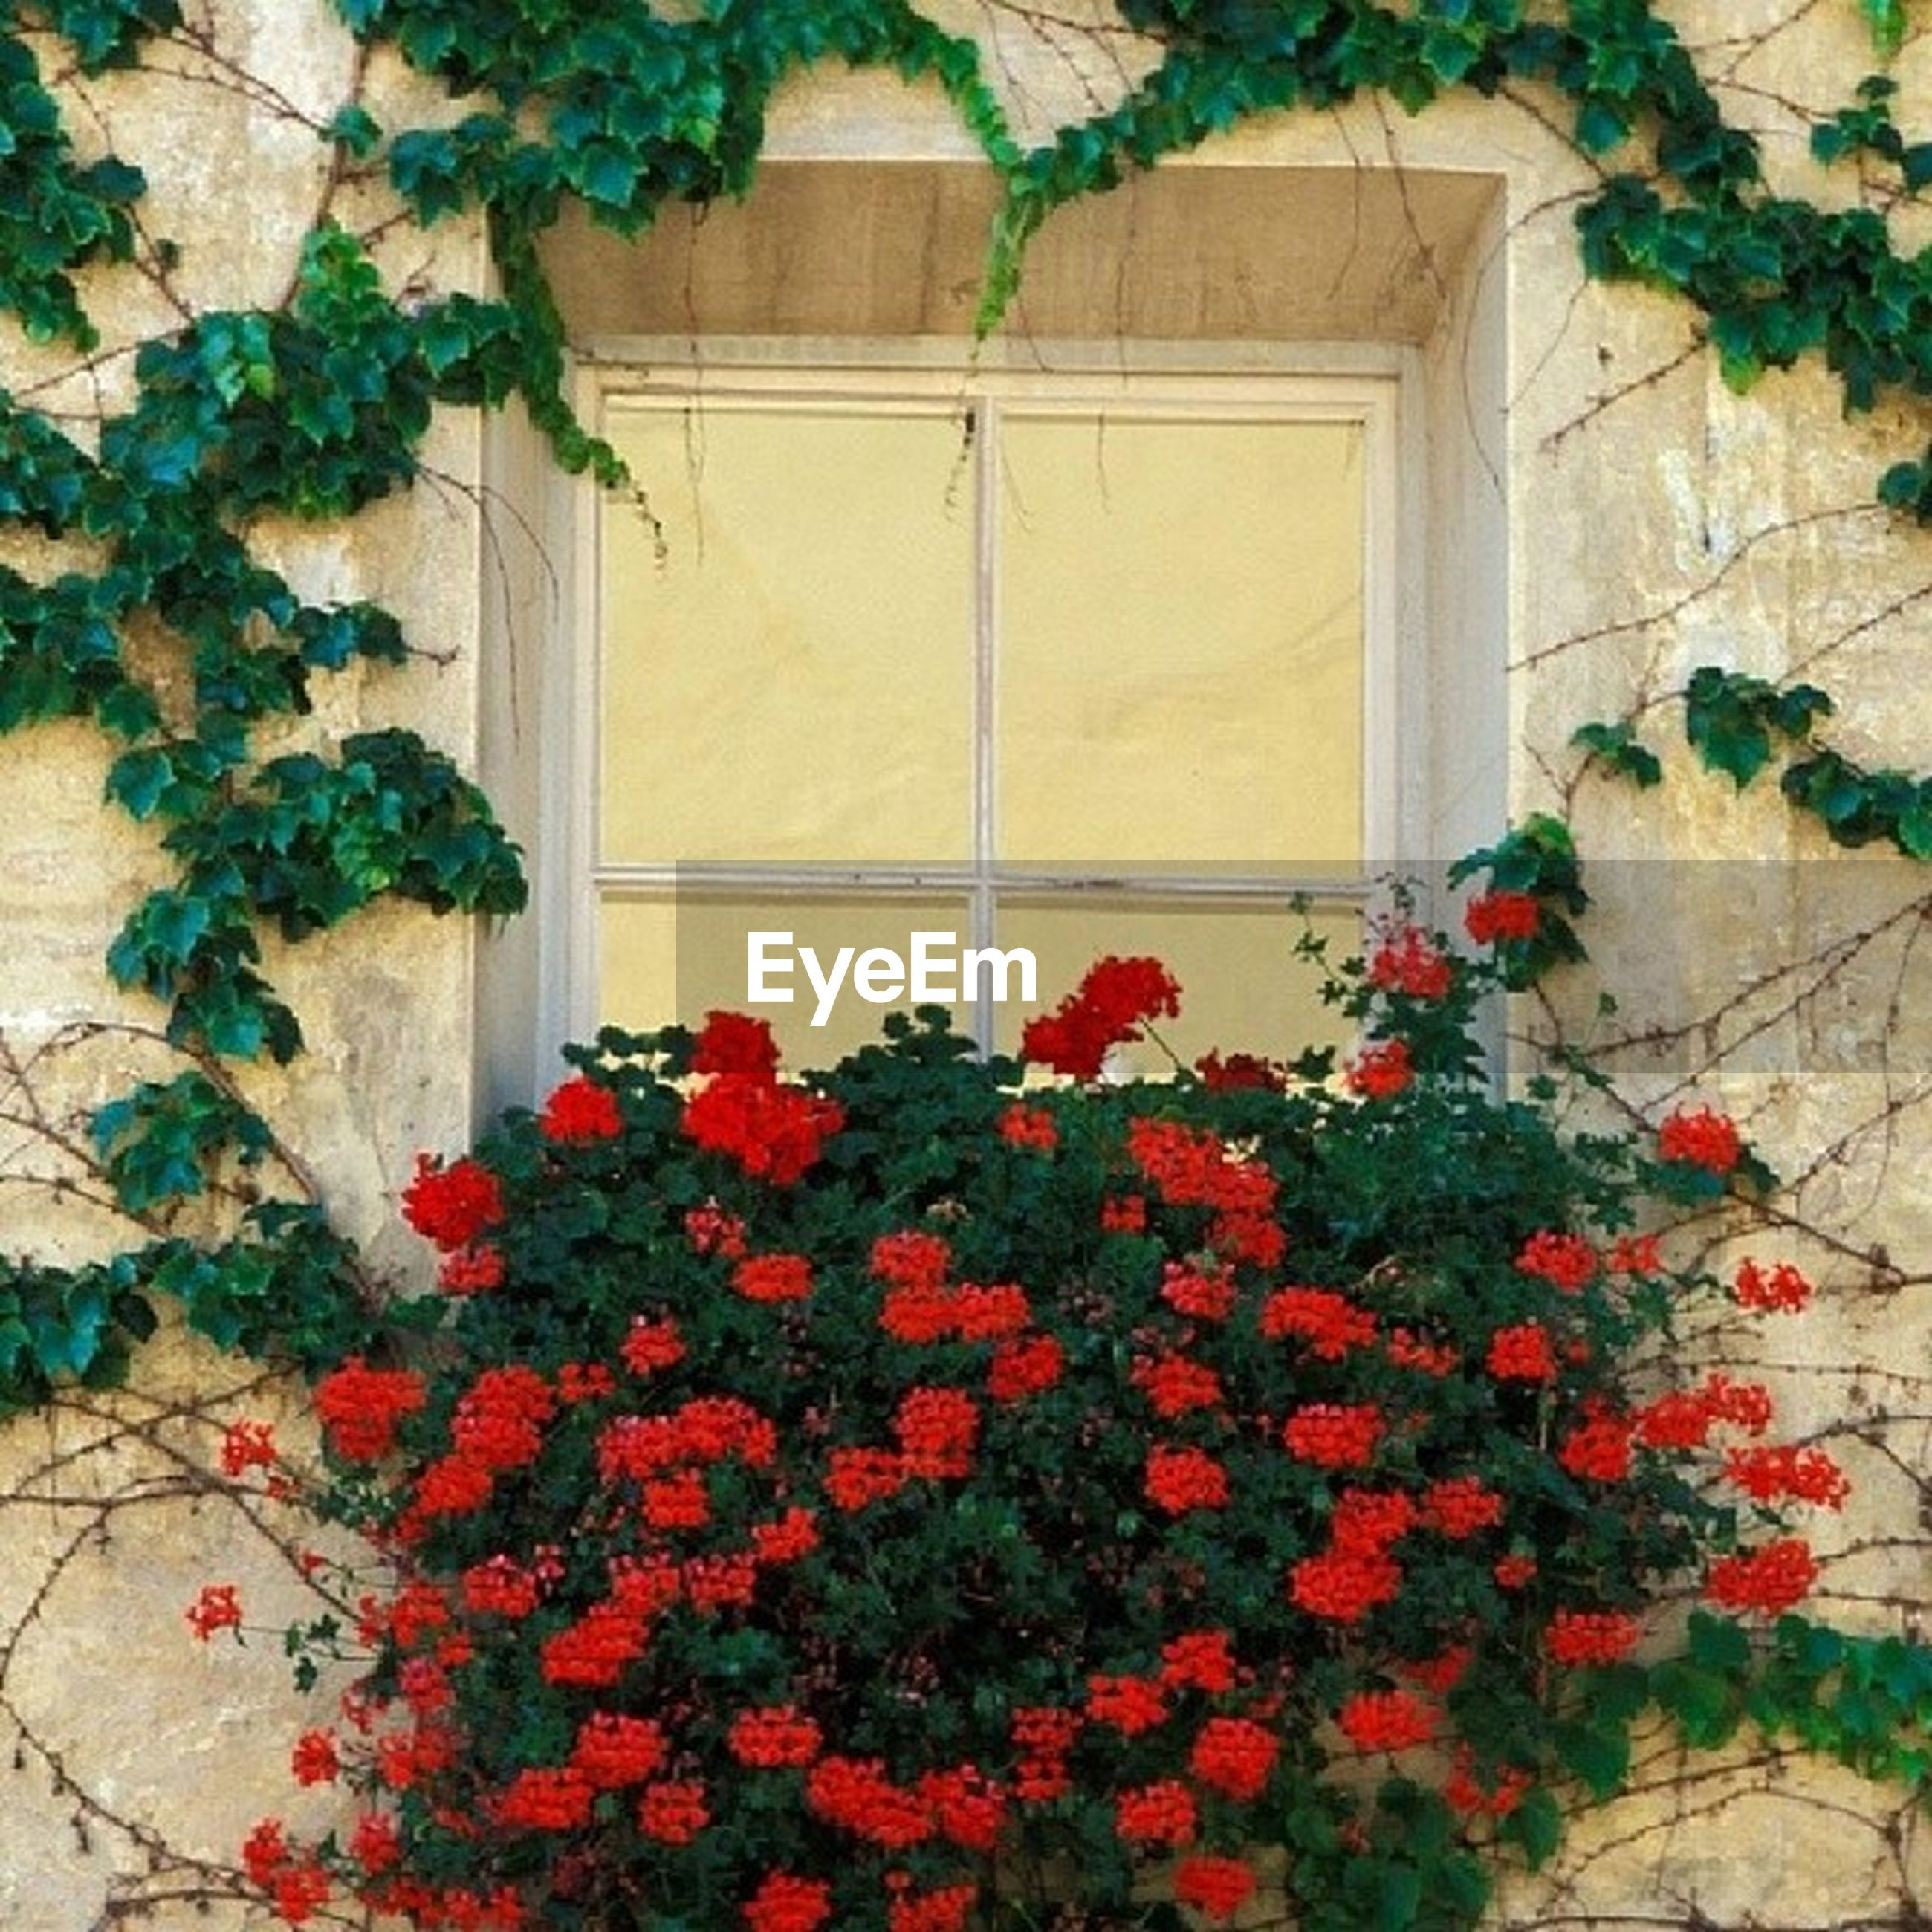 flower, plant, growth, red, built structure, wall - building feature, architecture, building exterior, leaf, freshness, wall, potted plant, ivy, fragility, house, nature, growing, brick wall, day, petal